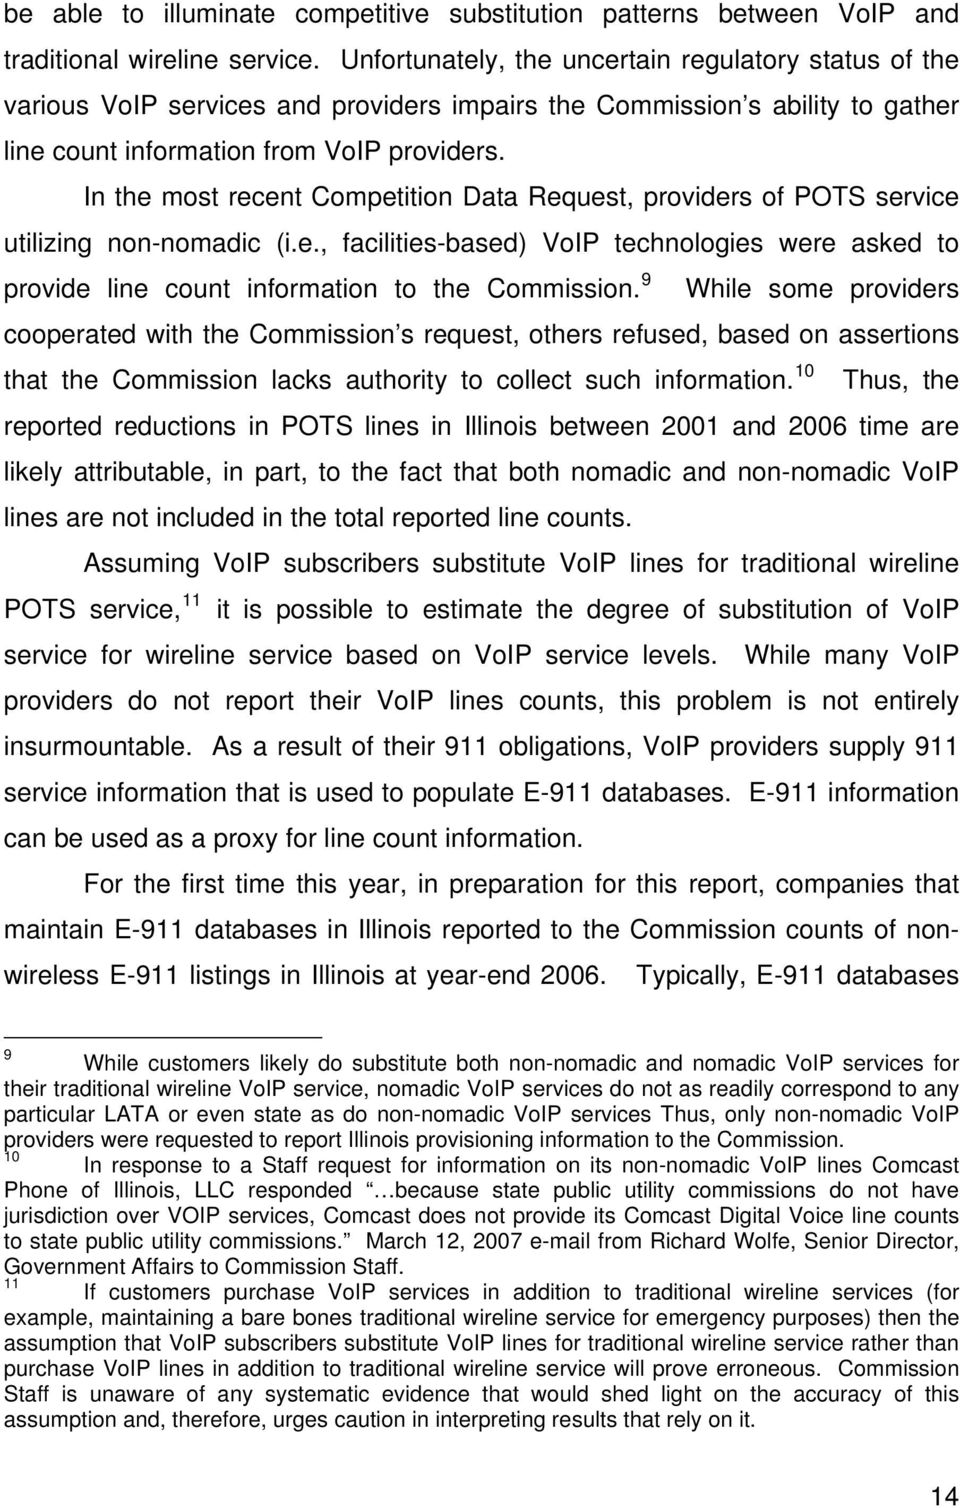 In the most recent Competition Data Request, providers of POTS service utilizing non-nomadic (i.e., facilities-based) VoIP technologies were asked to provide line count information to the Commission.